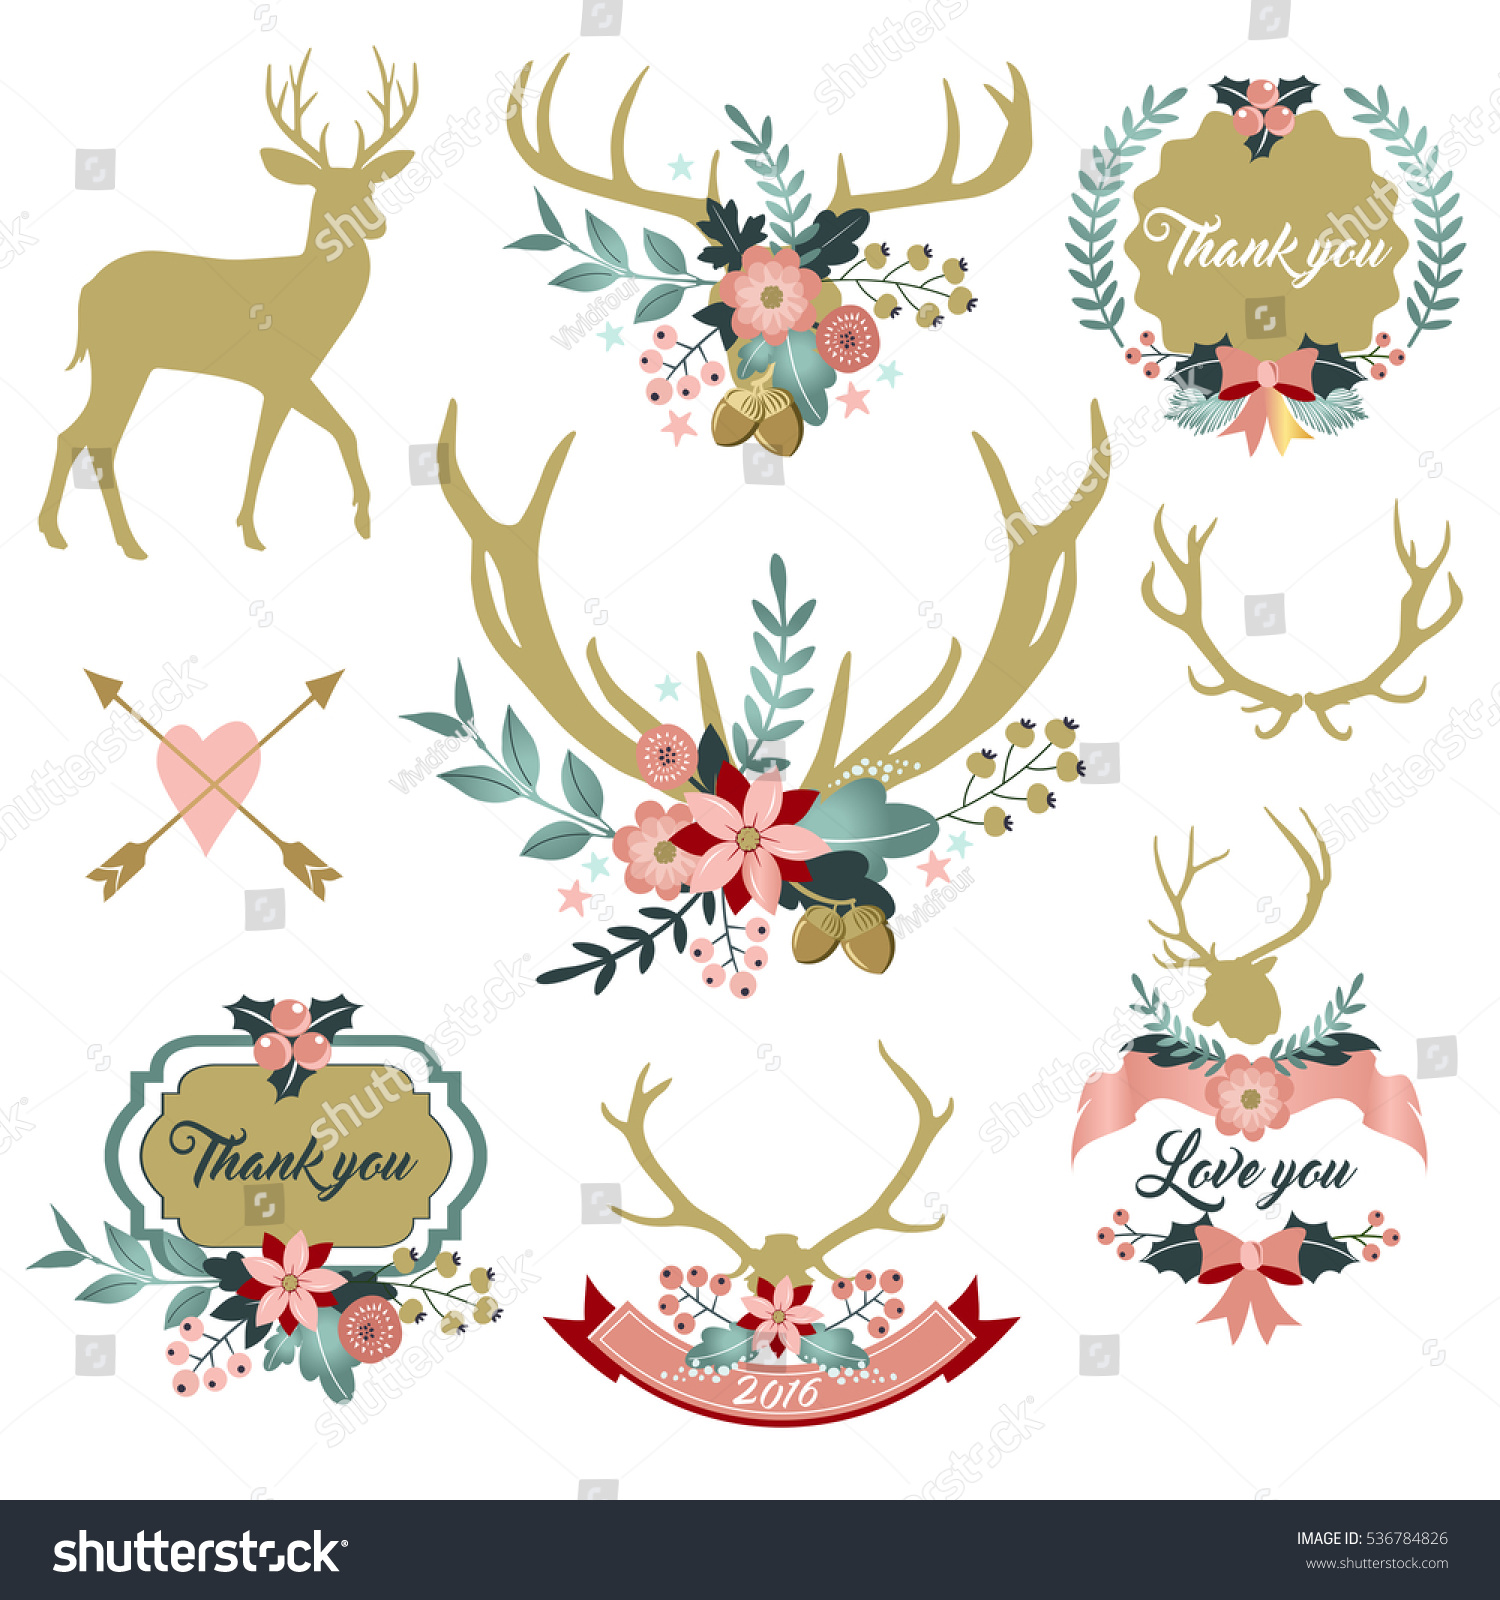 Deer Antlers Flowers Deer Floral Clipart Stock Vector (Royalty Free.